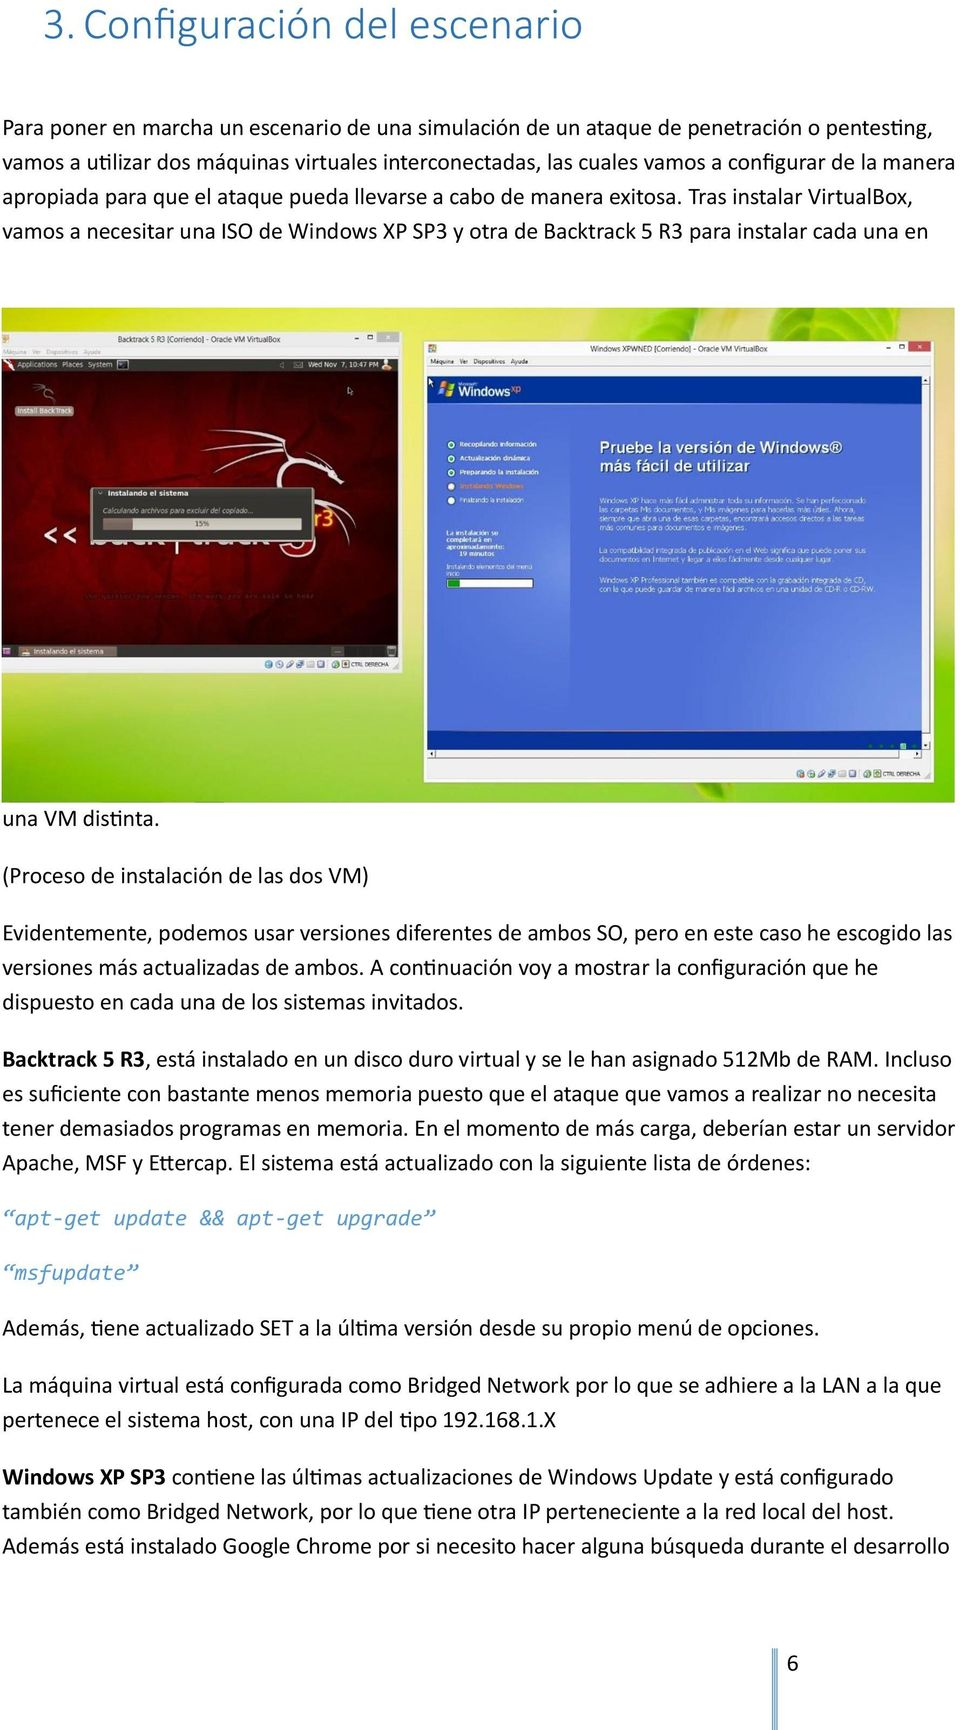 Tras instalar VirtualBox, vamos a necesitar una ISO de Windows XP SP3 y otra de Backtrack 5 R3 para instalar cada una en una VM distinta.